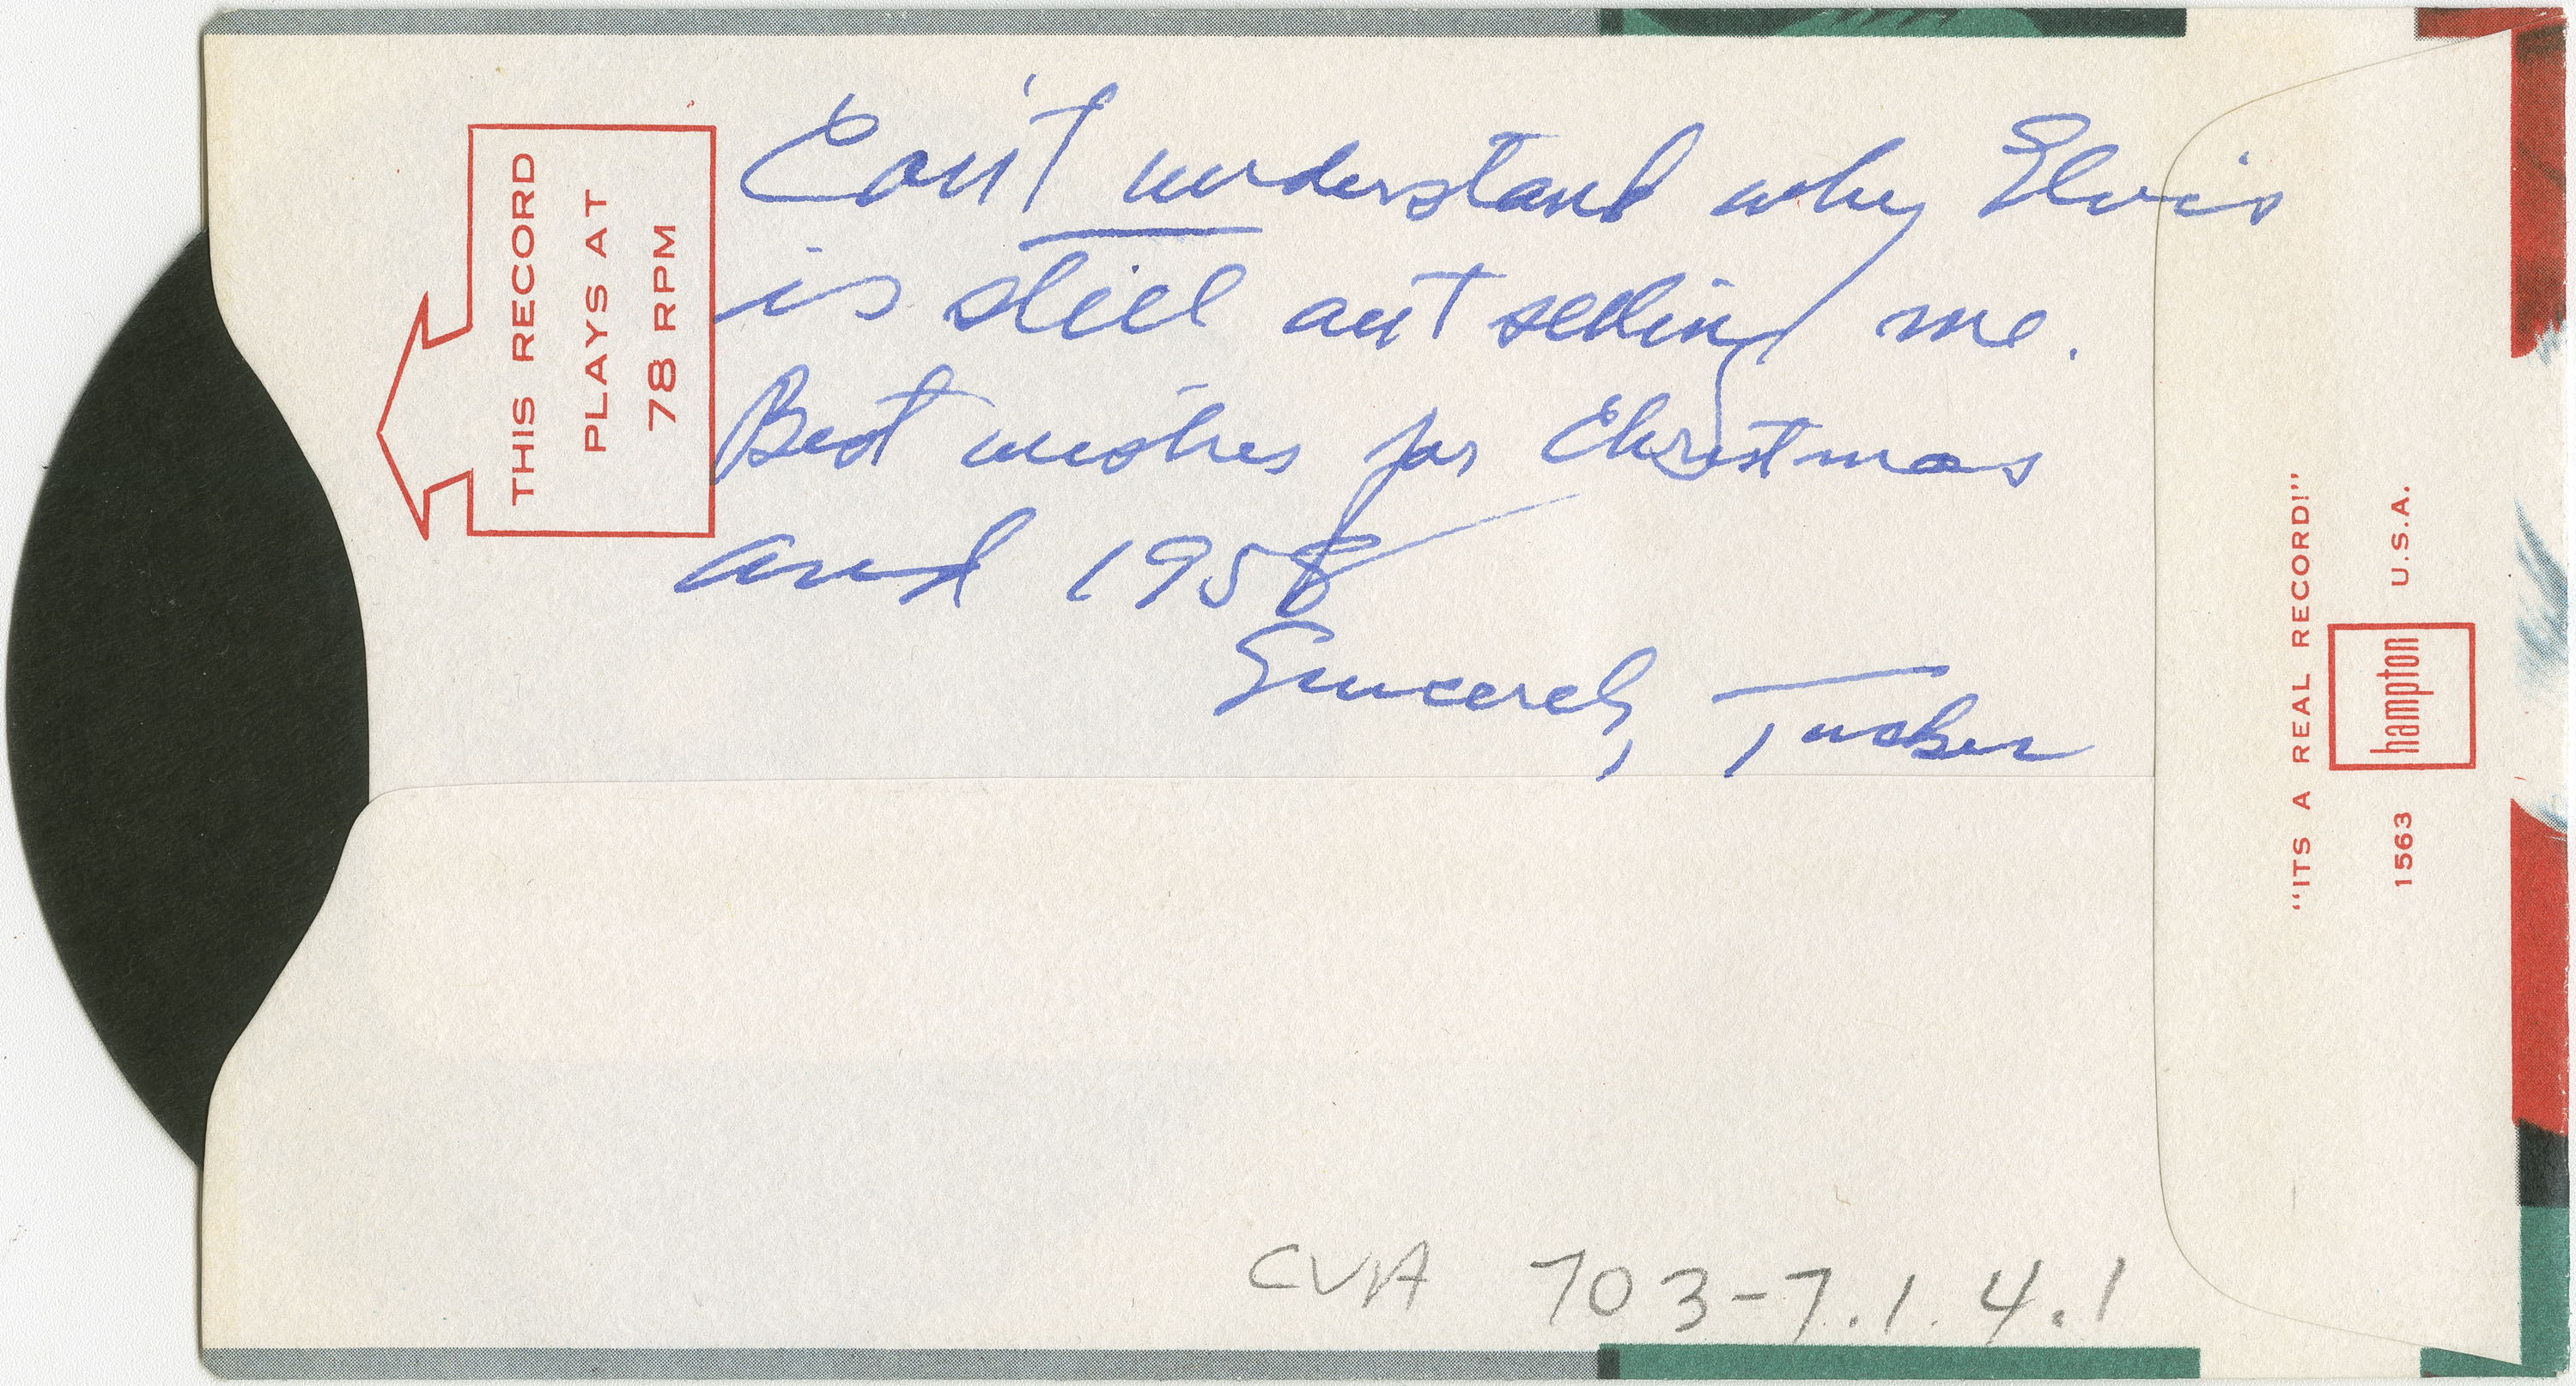 Back of card from Tucker Battle to the Hamber family. Identifier : CVA 703-7.1.4.2